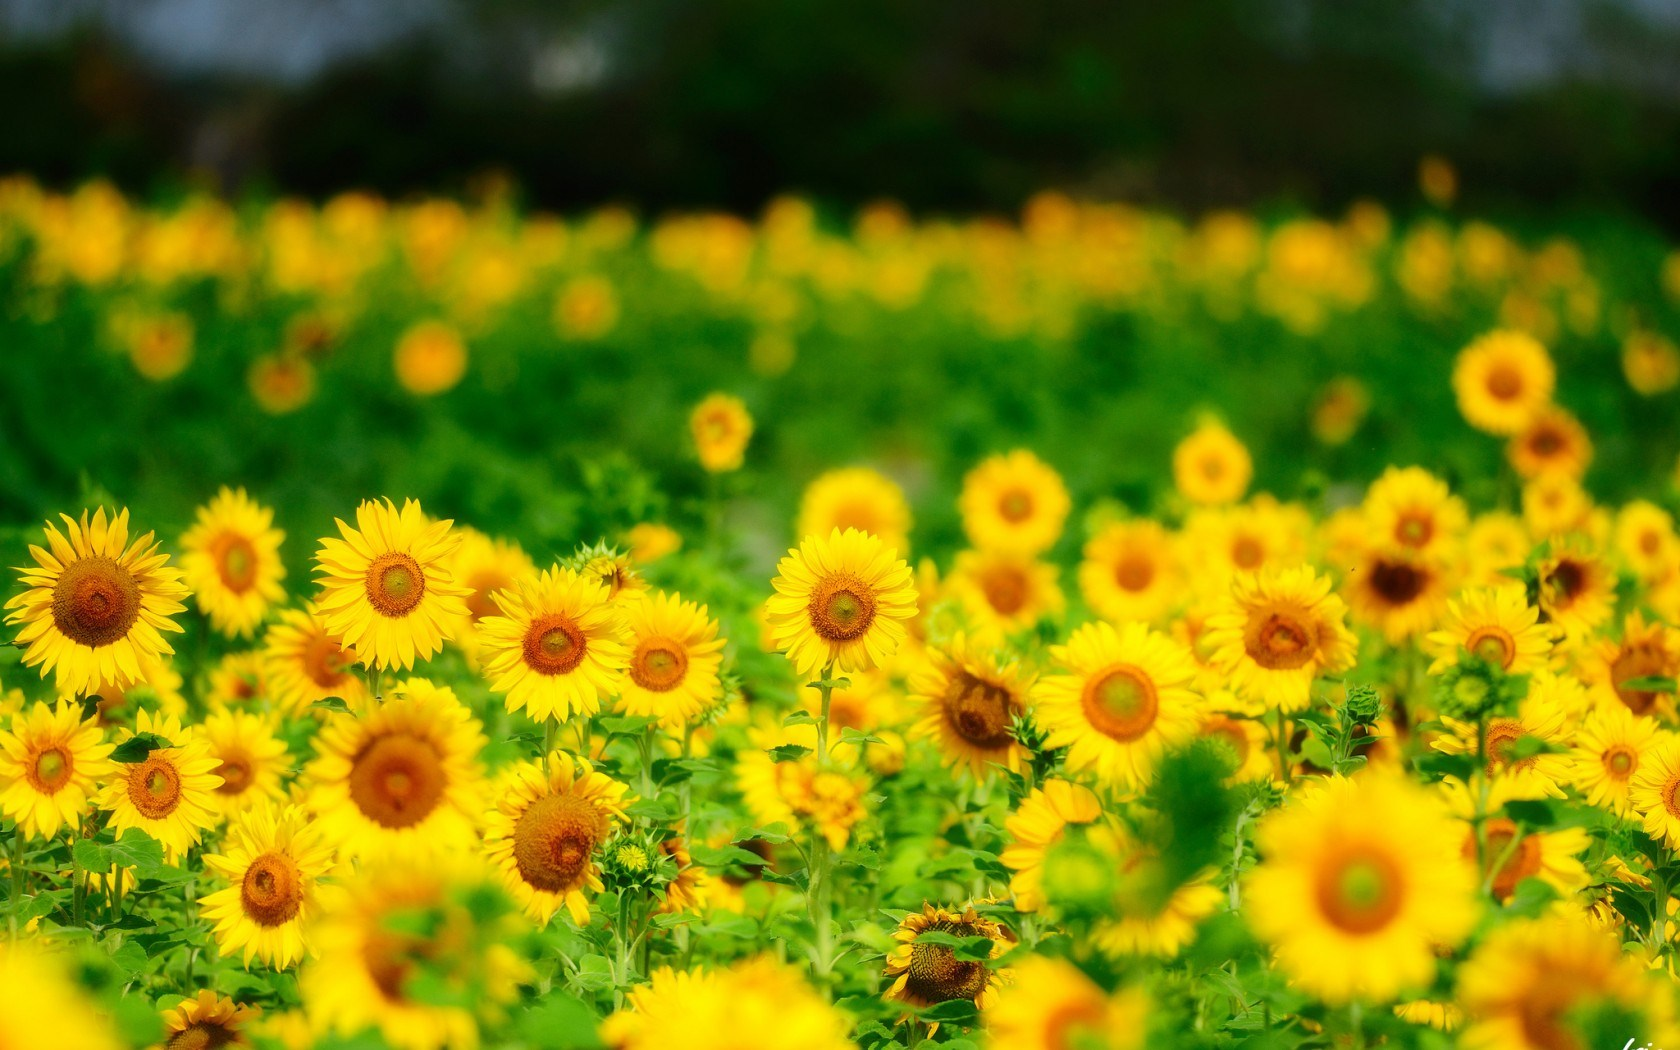 sunflower background images